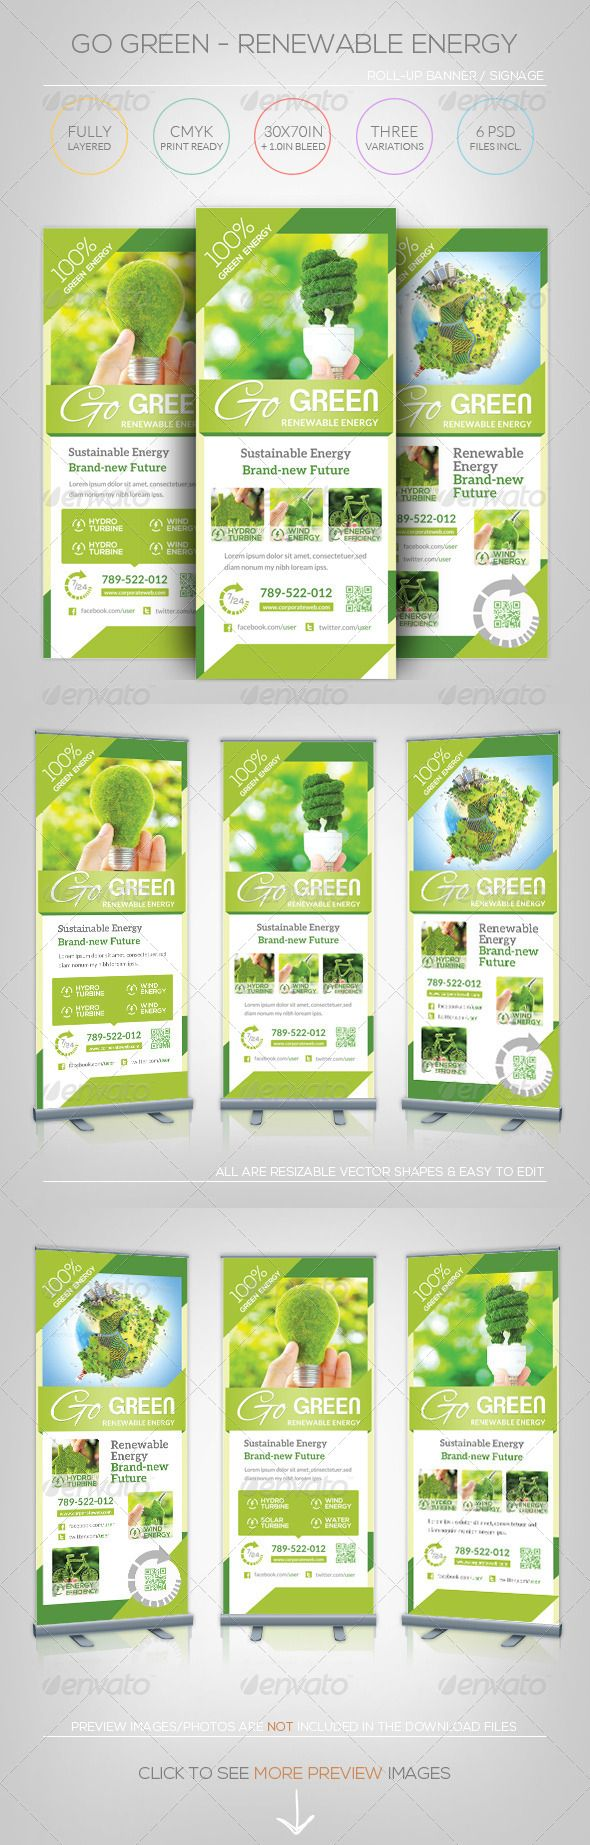 renewable energy go green roll up banner signage print